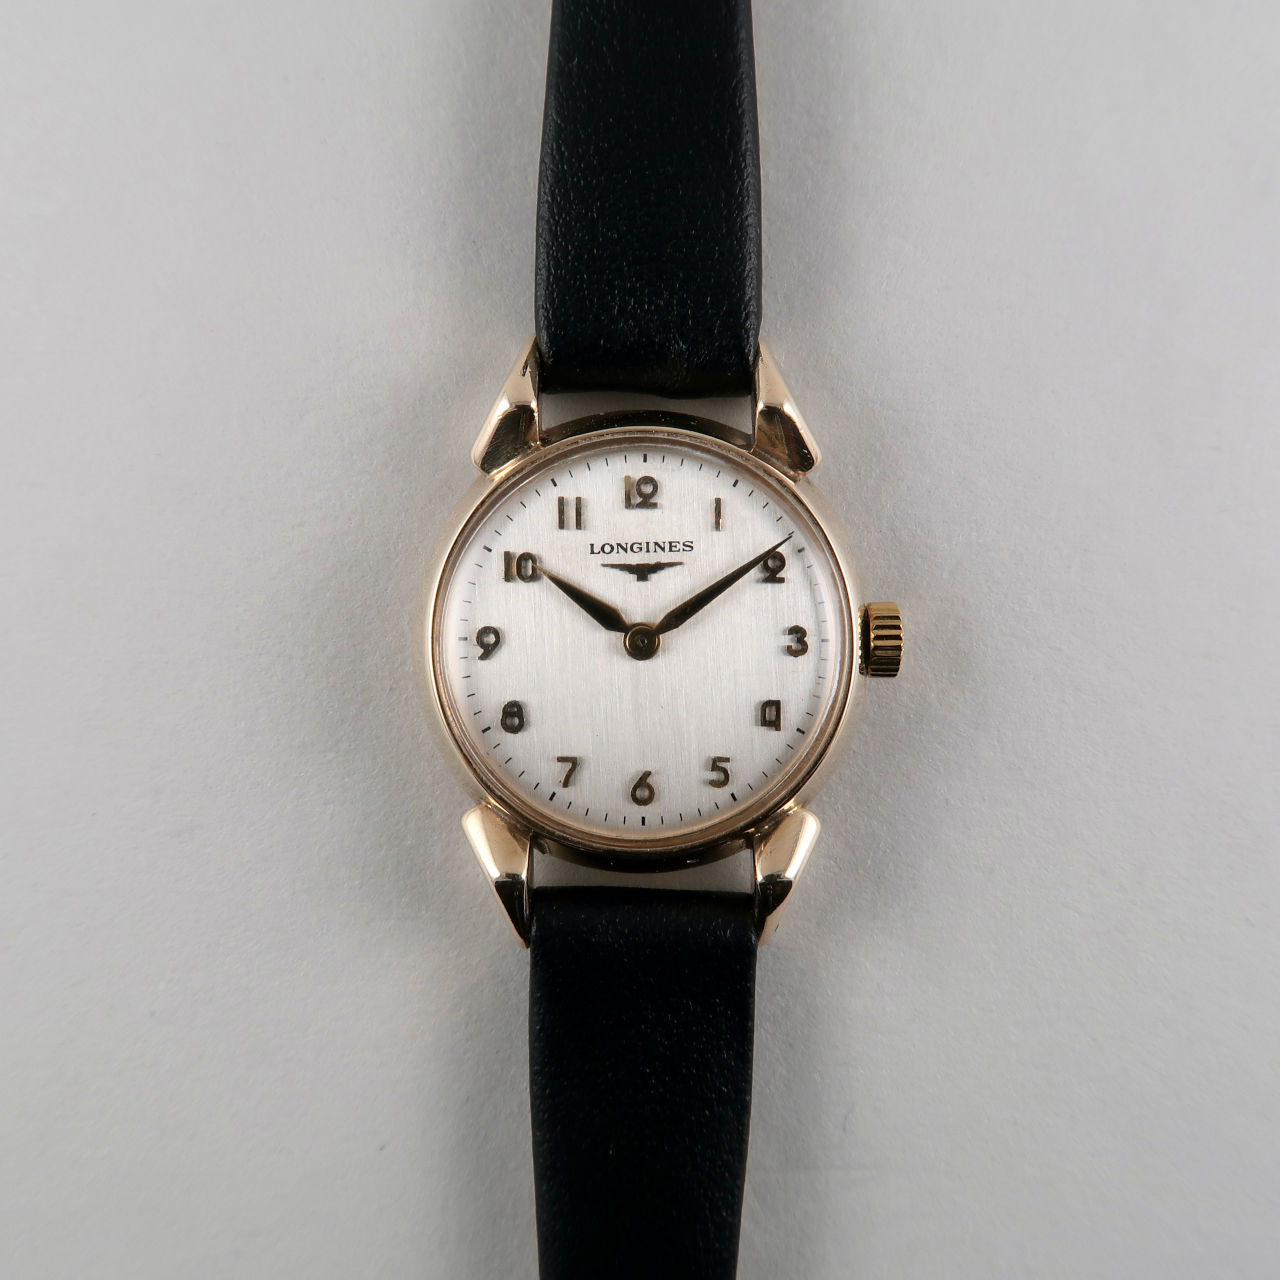 Longines cal. 14.16 invoiced 1956 | 9ct gold lady's hand wound vintage wristwatch